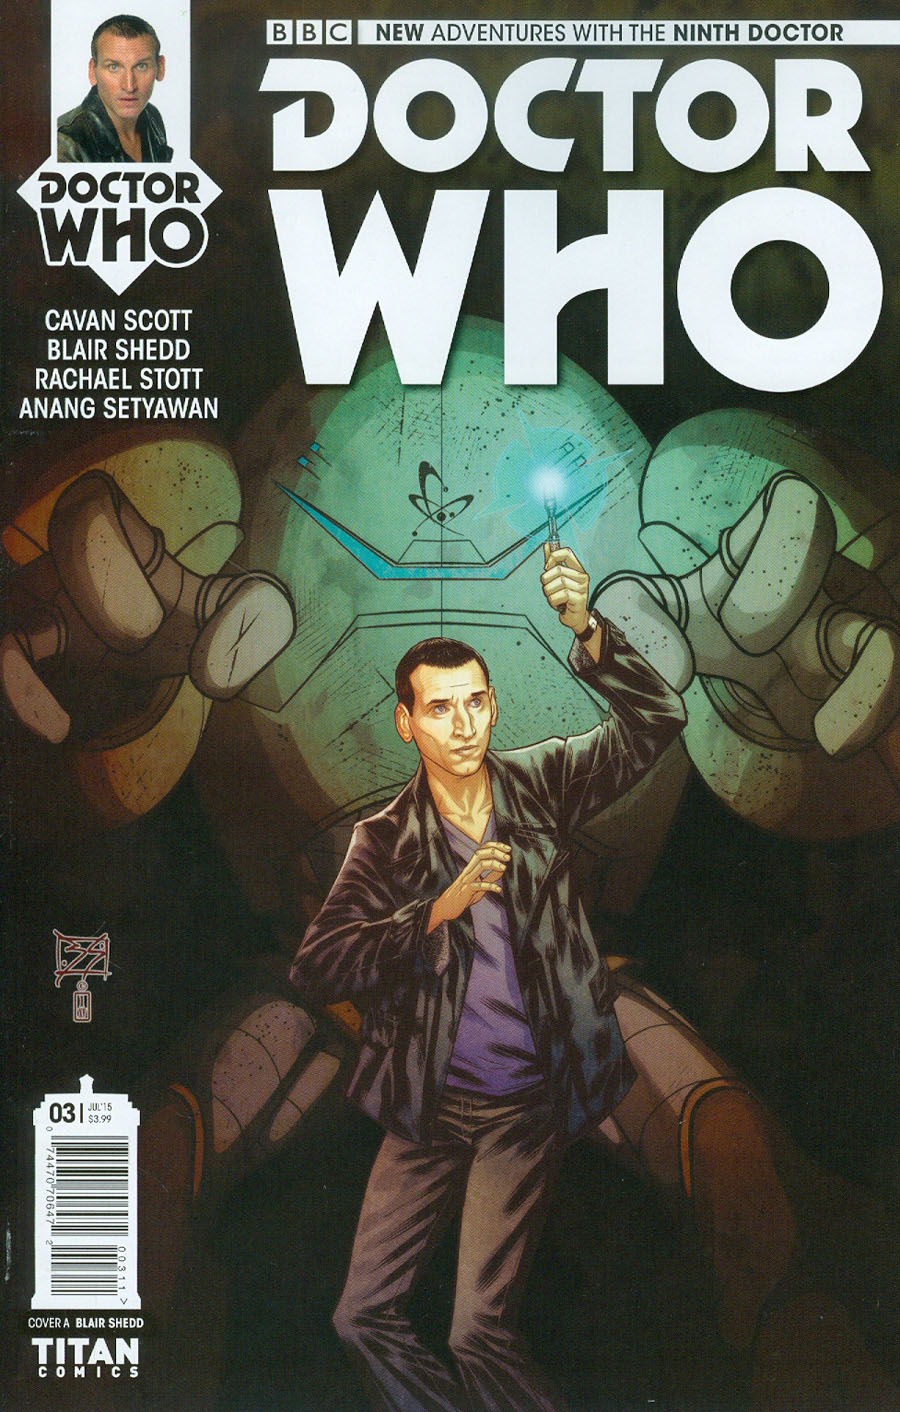 Doctor Who 9th Doctor #3 Cover A Regular Blair Shedd Cover